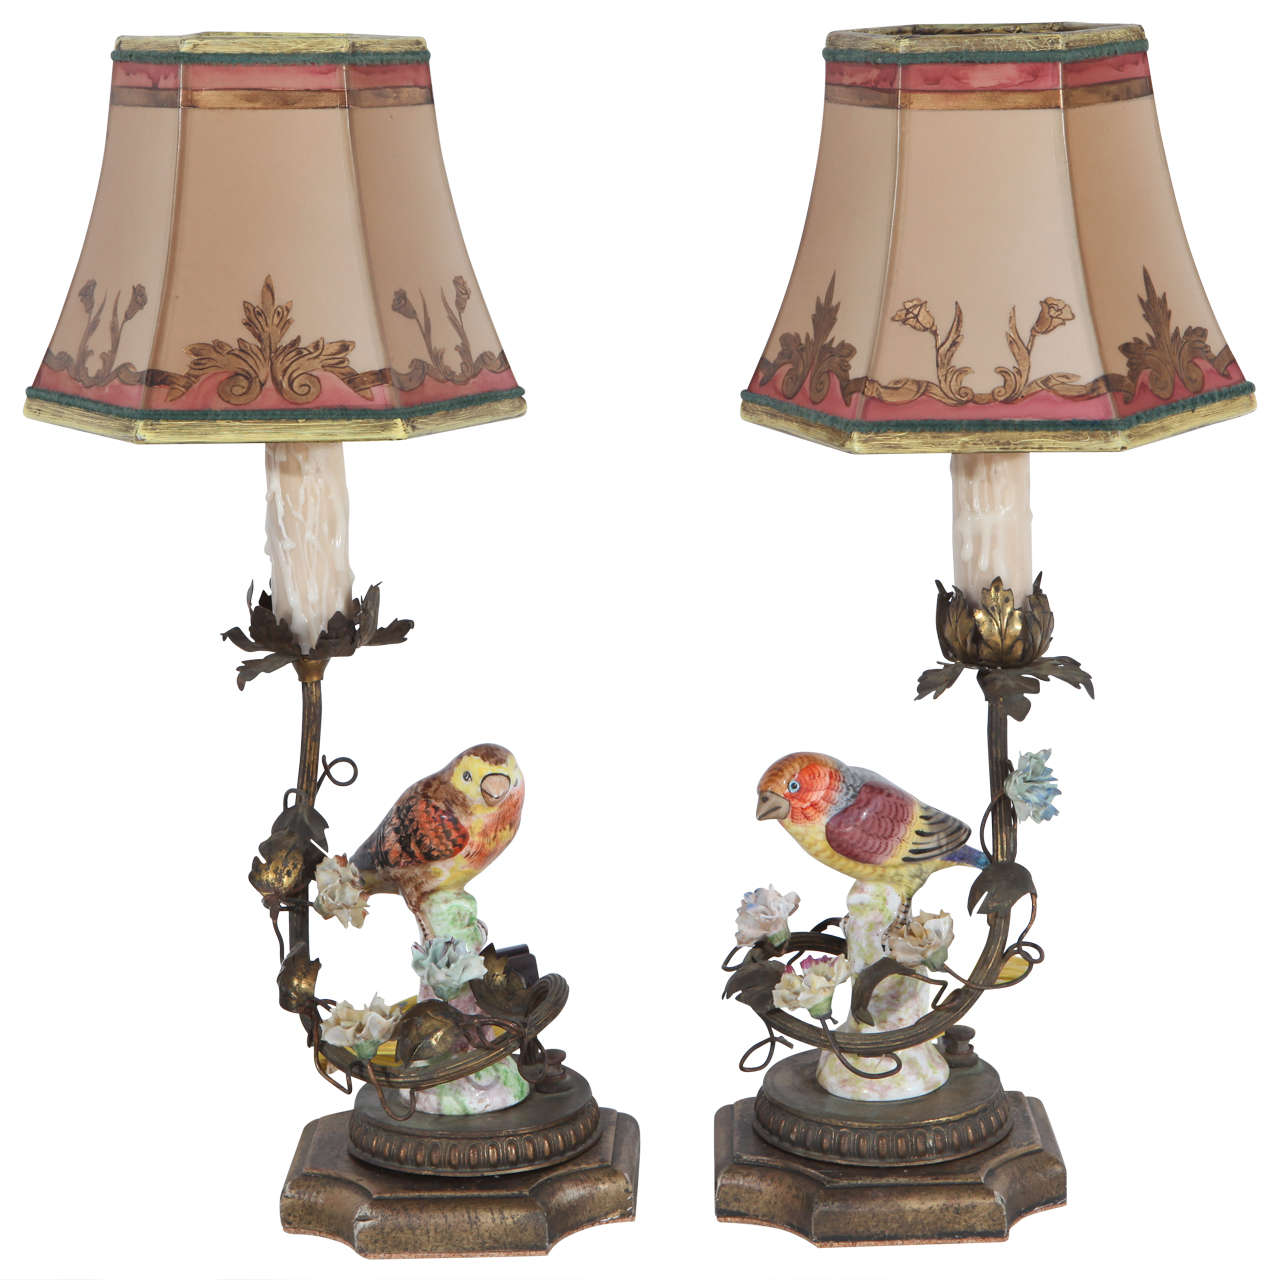 challieres placemathieu goodge bird lamps mathieu unspecified lamp